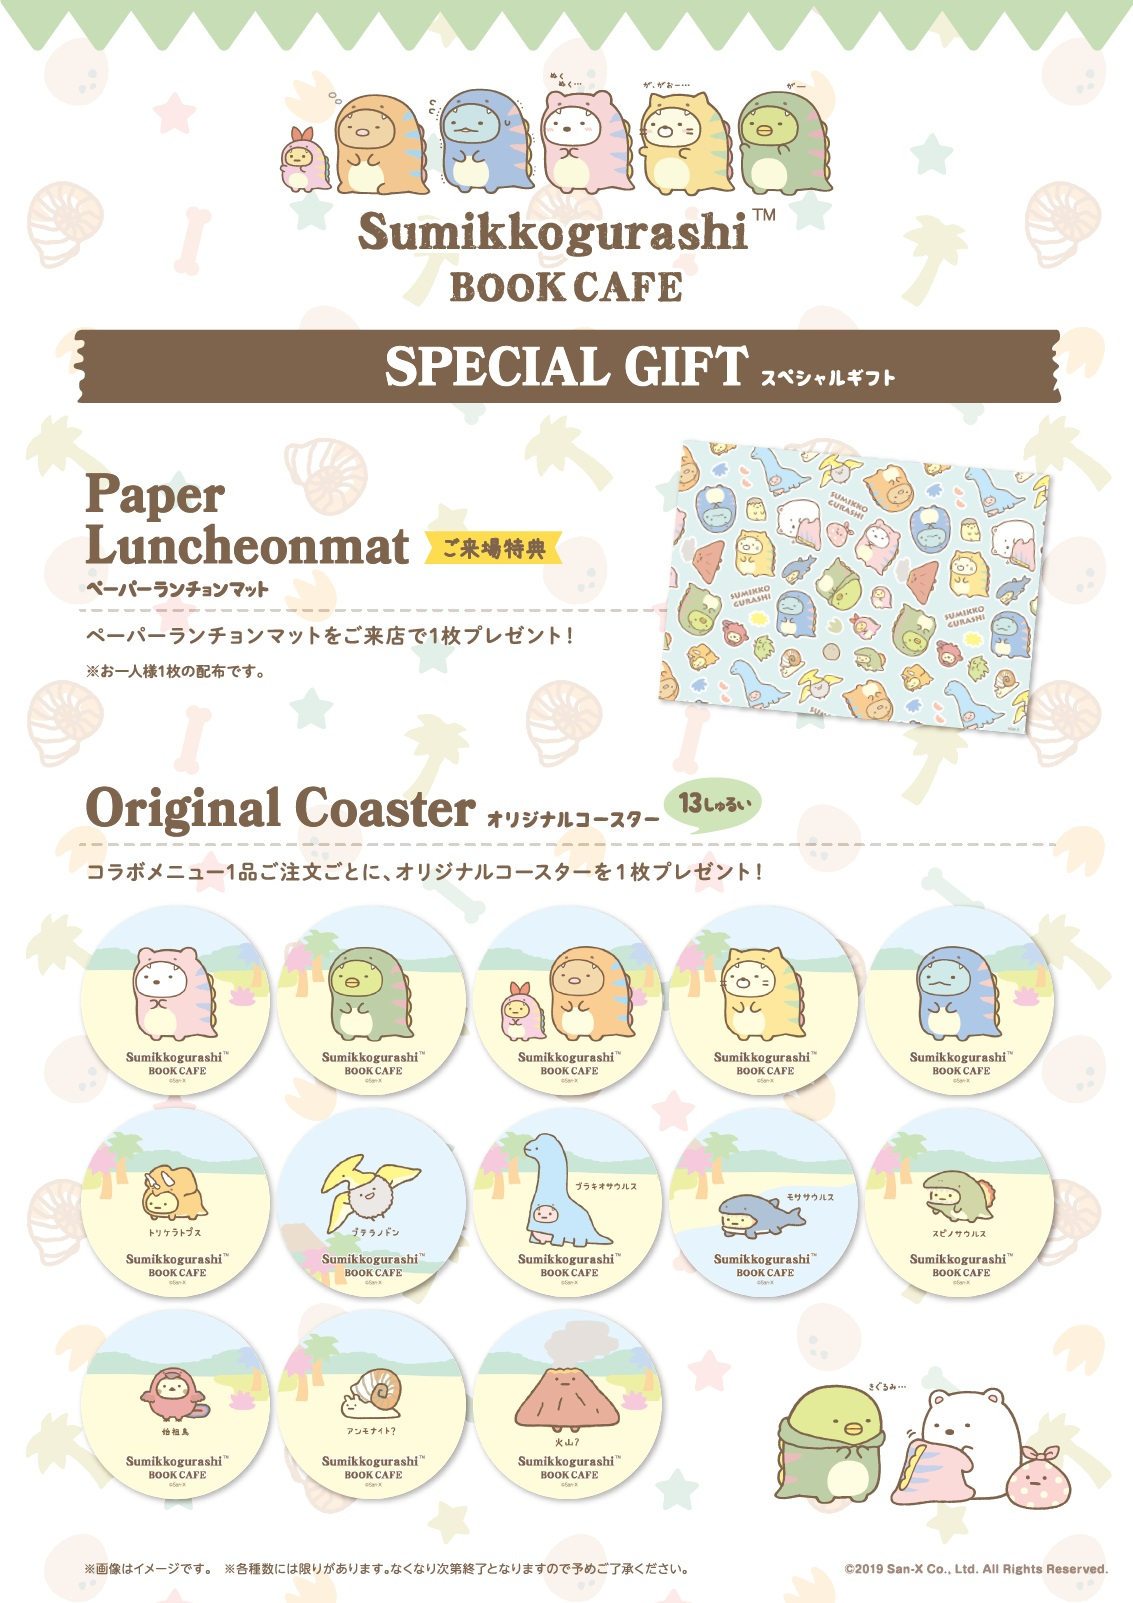 Sweets Paradise (スイーツパラダイス) Location Novelty Items - Luncheon Mat & Coasters